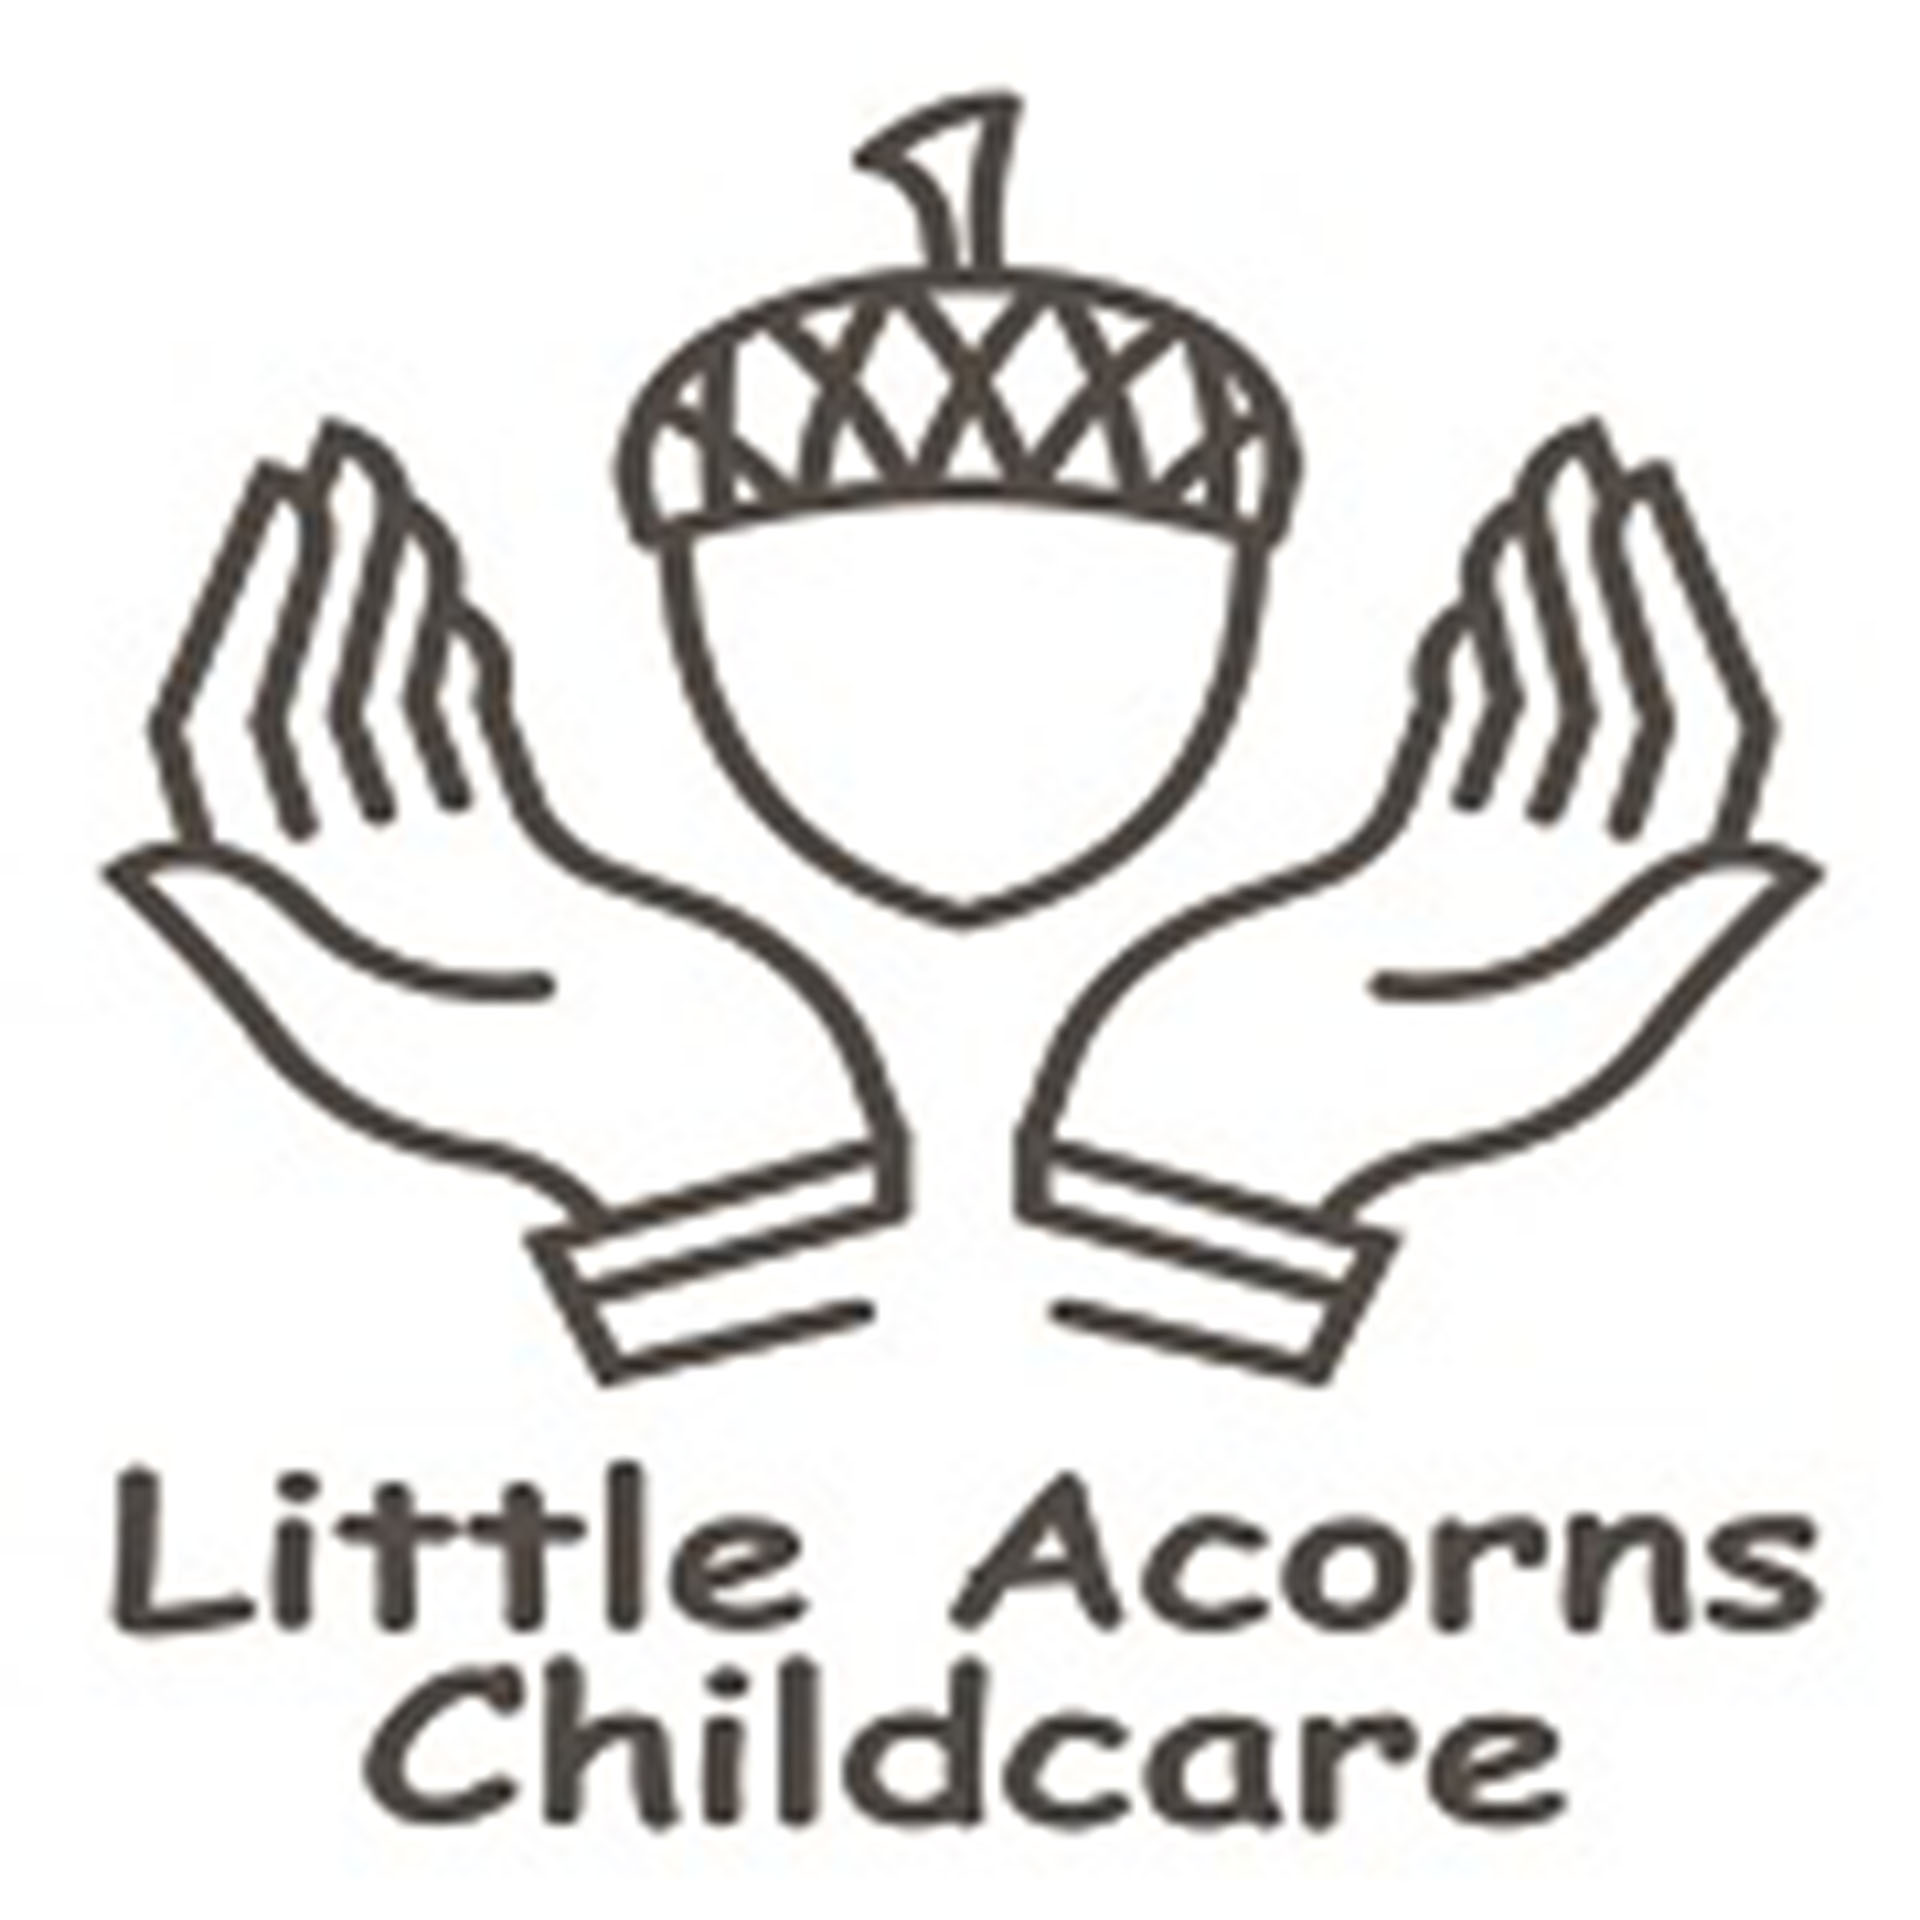 Little Acorns Childcare's logo